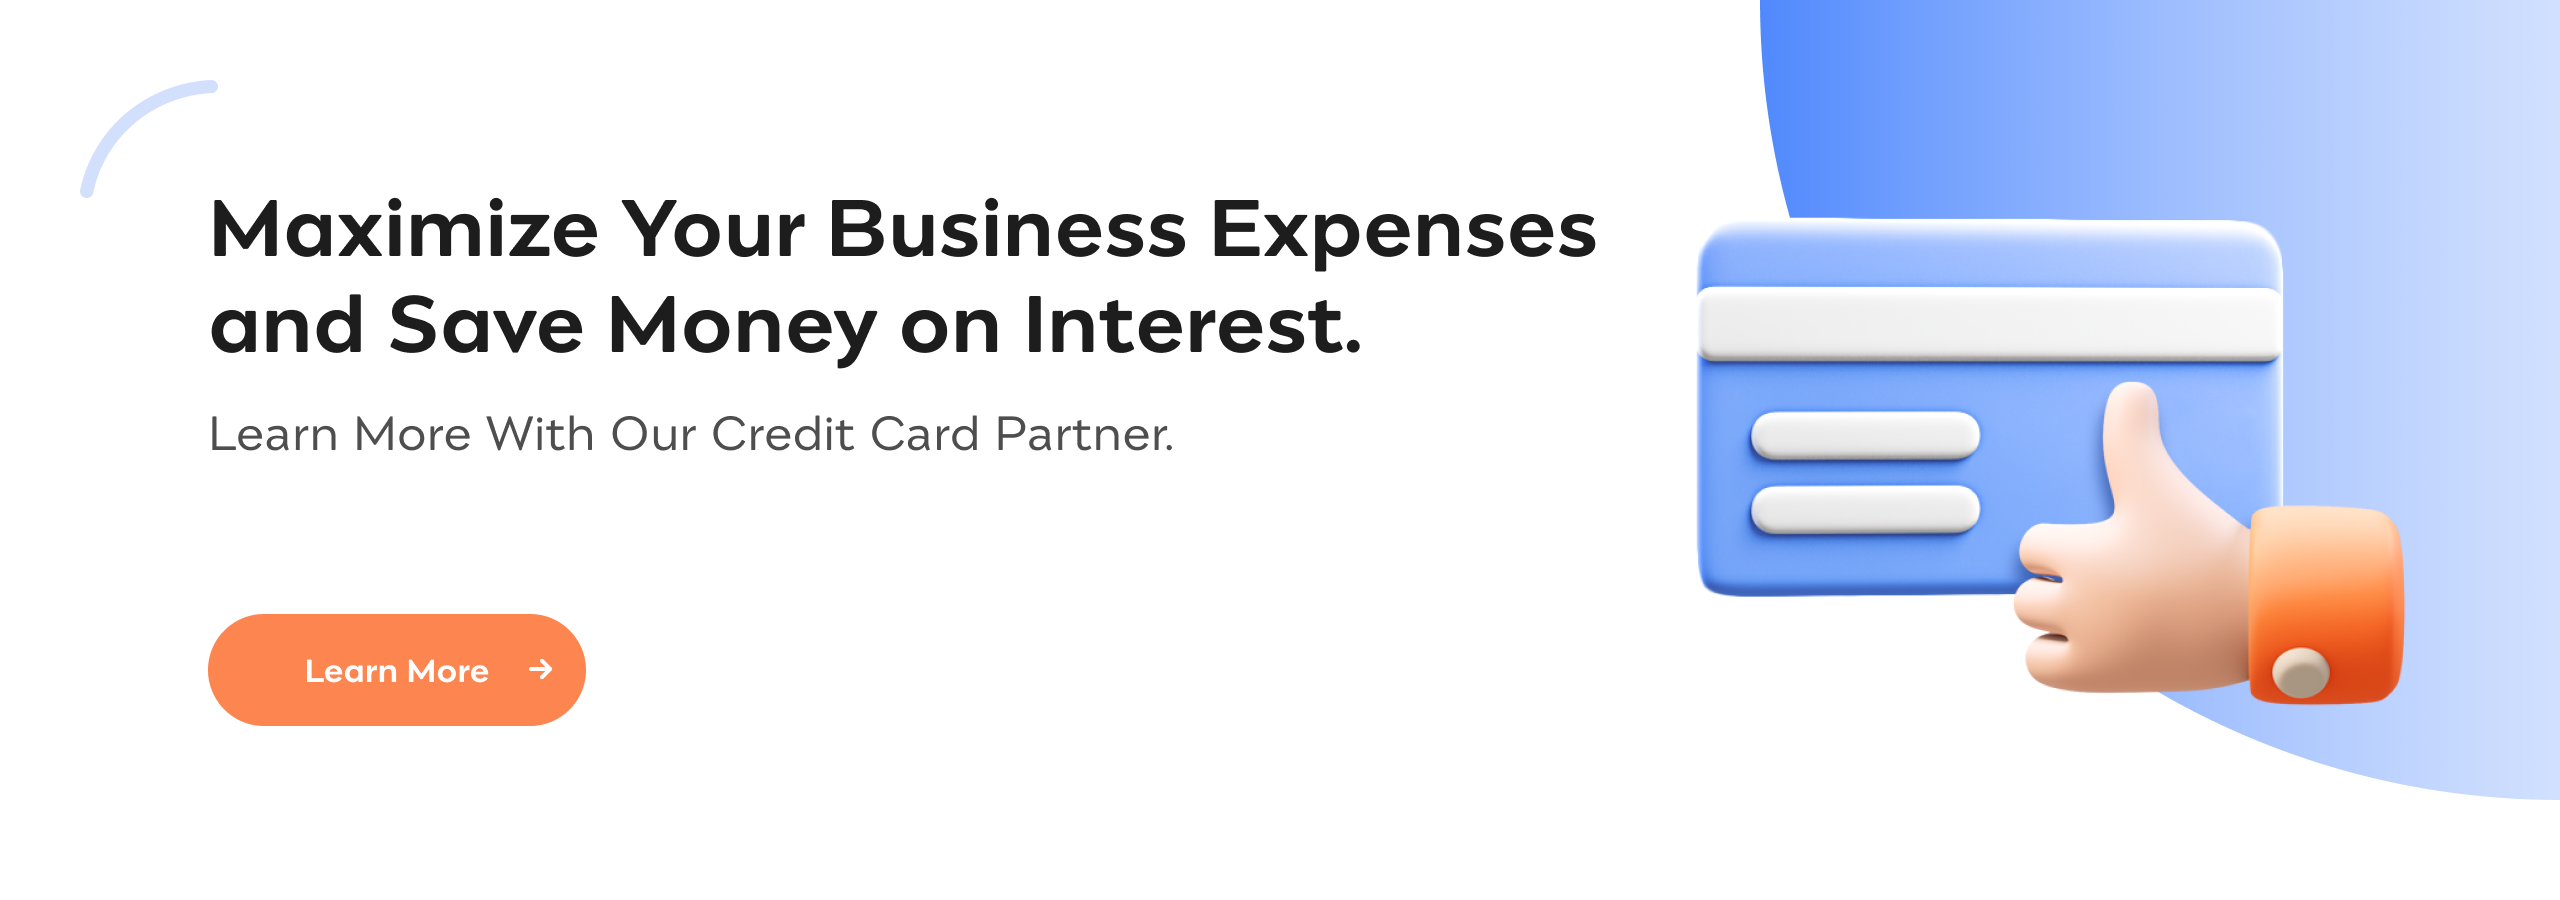 Incfile | Credit Card Partner | Credit Ratings | Incfile